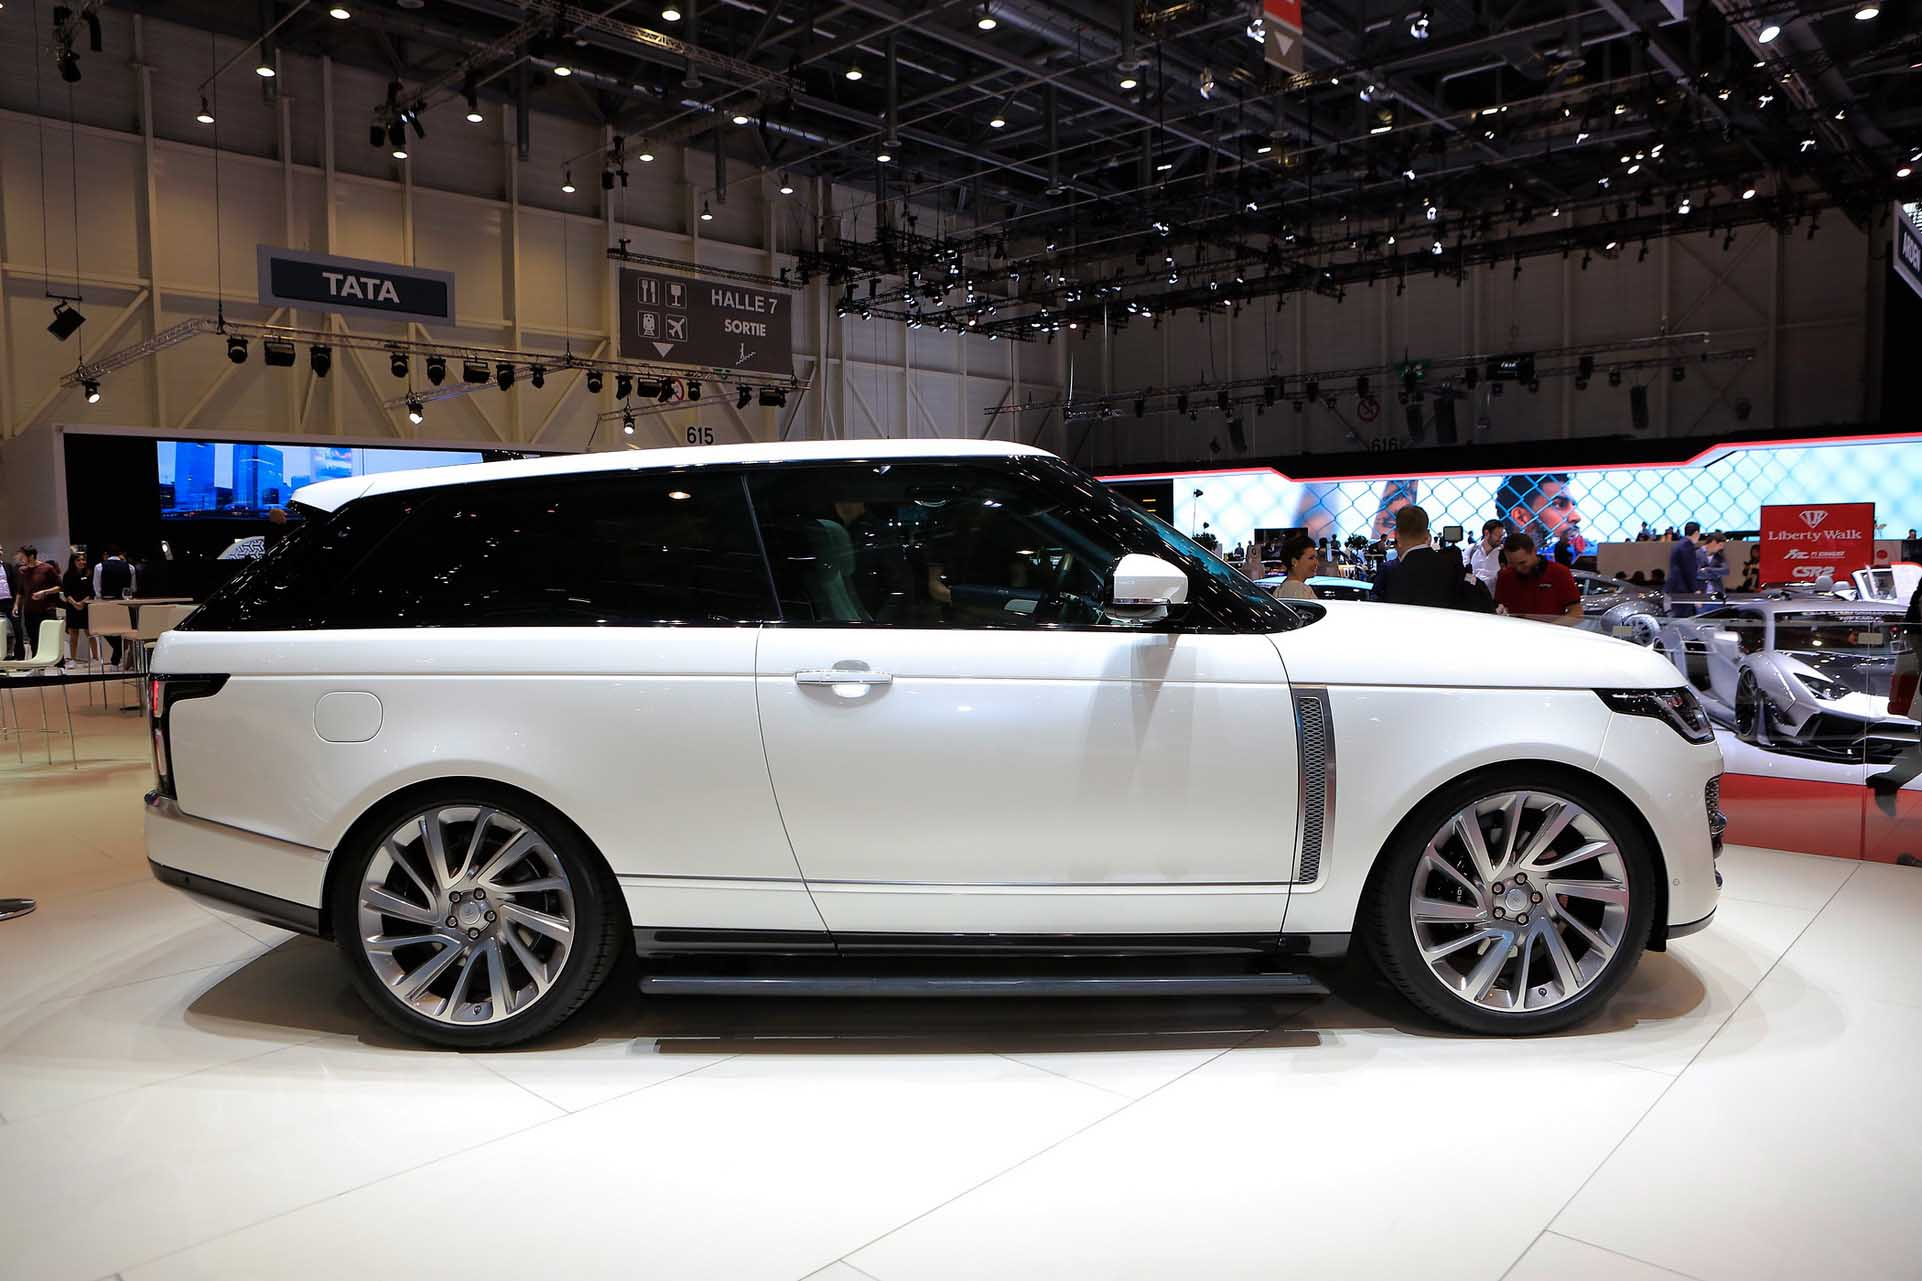 2-drzwiowy Range Rover SV Coupe